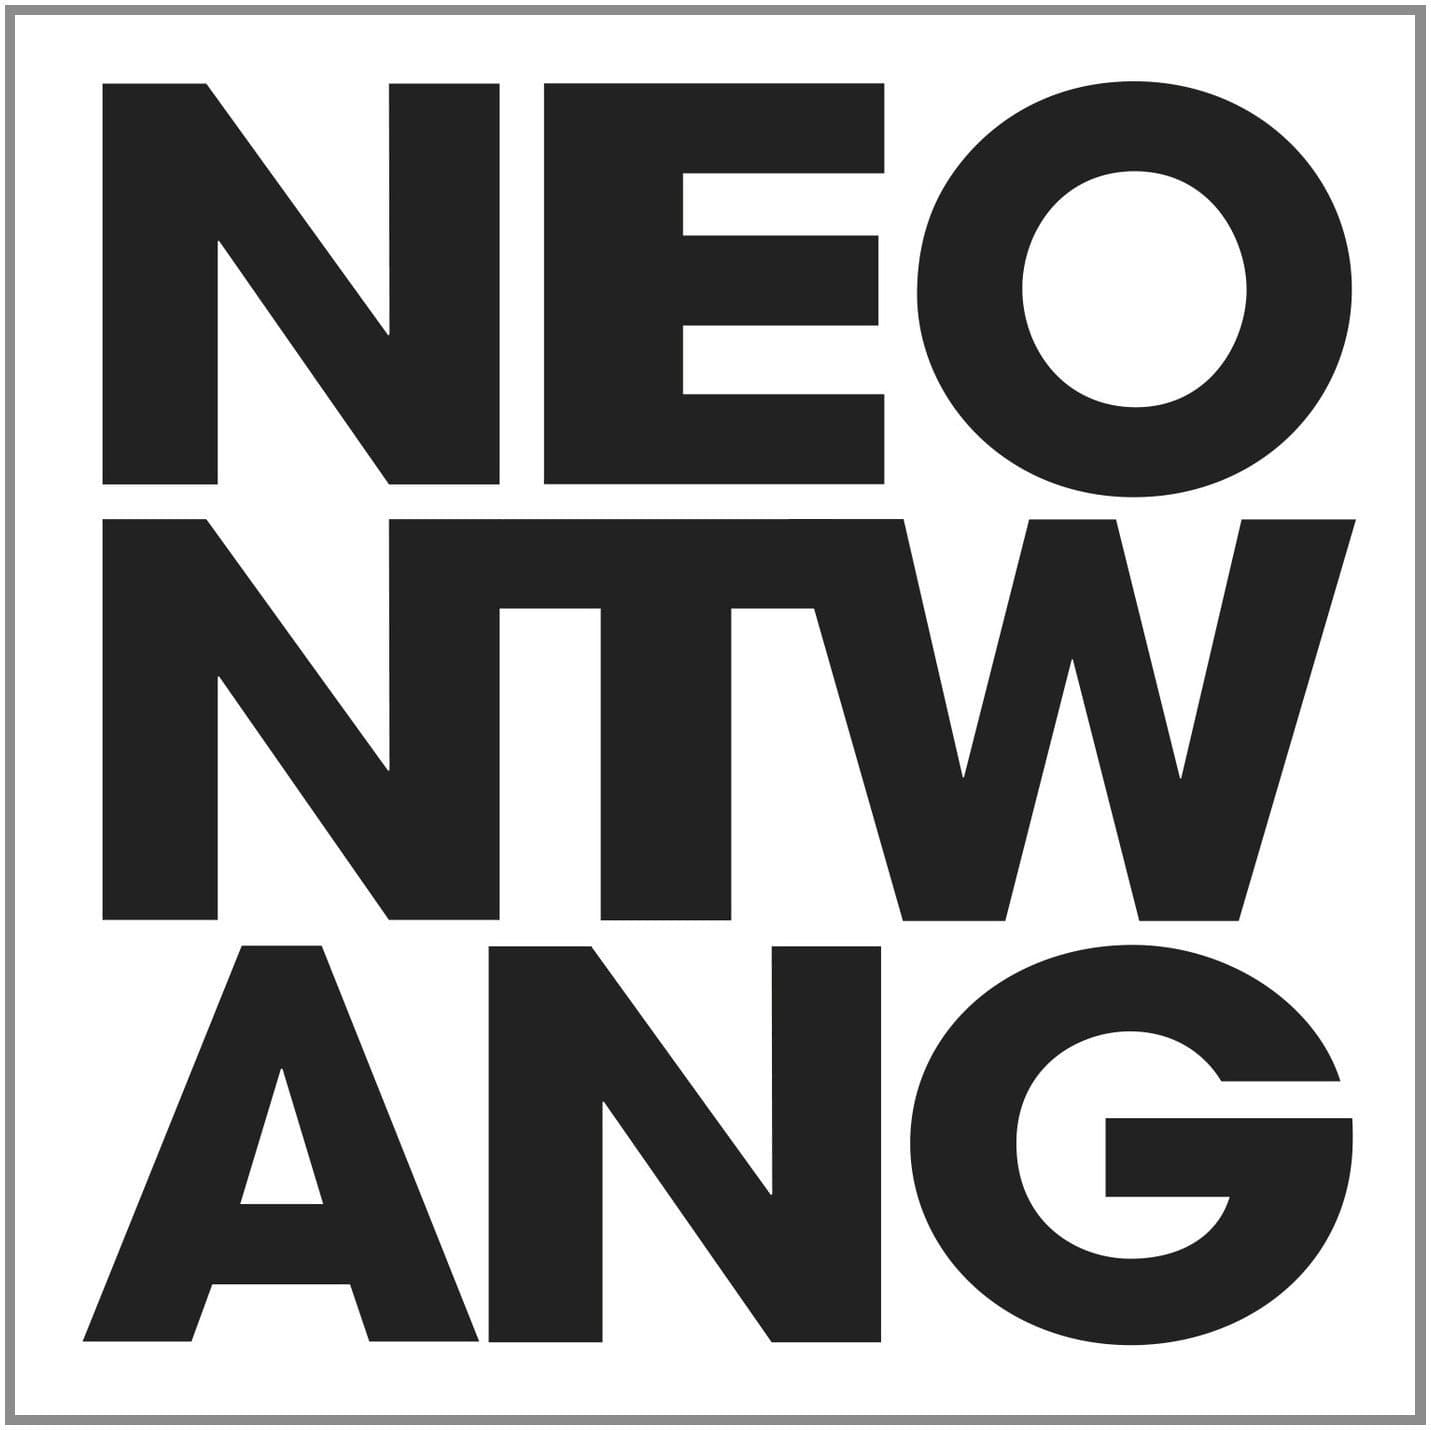 Critique : The Twang - Neontwang 2